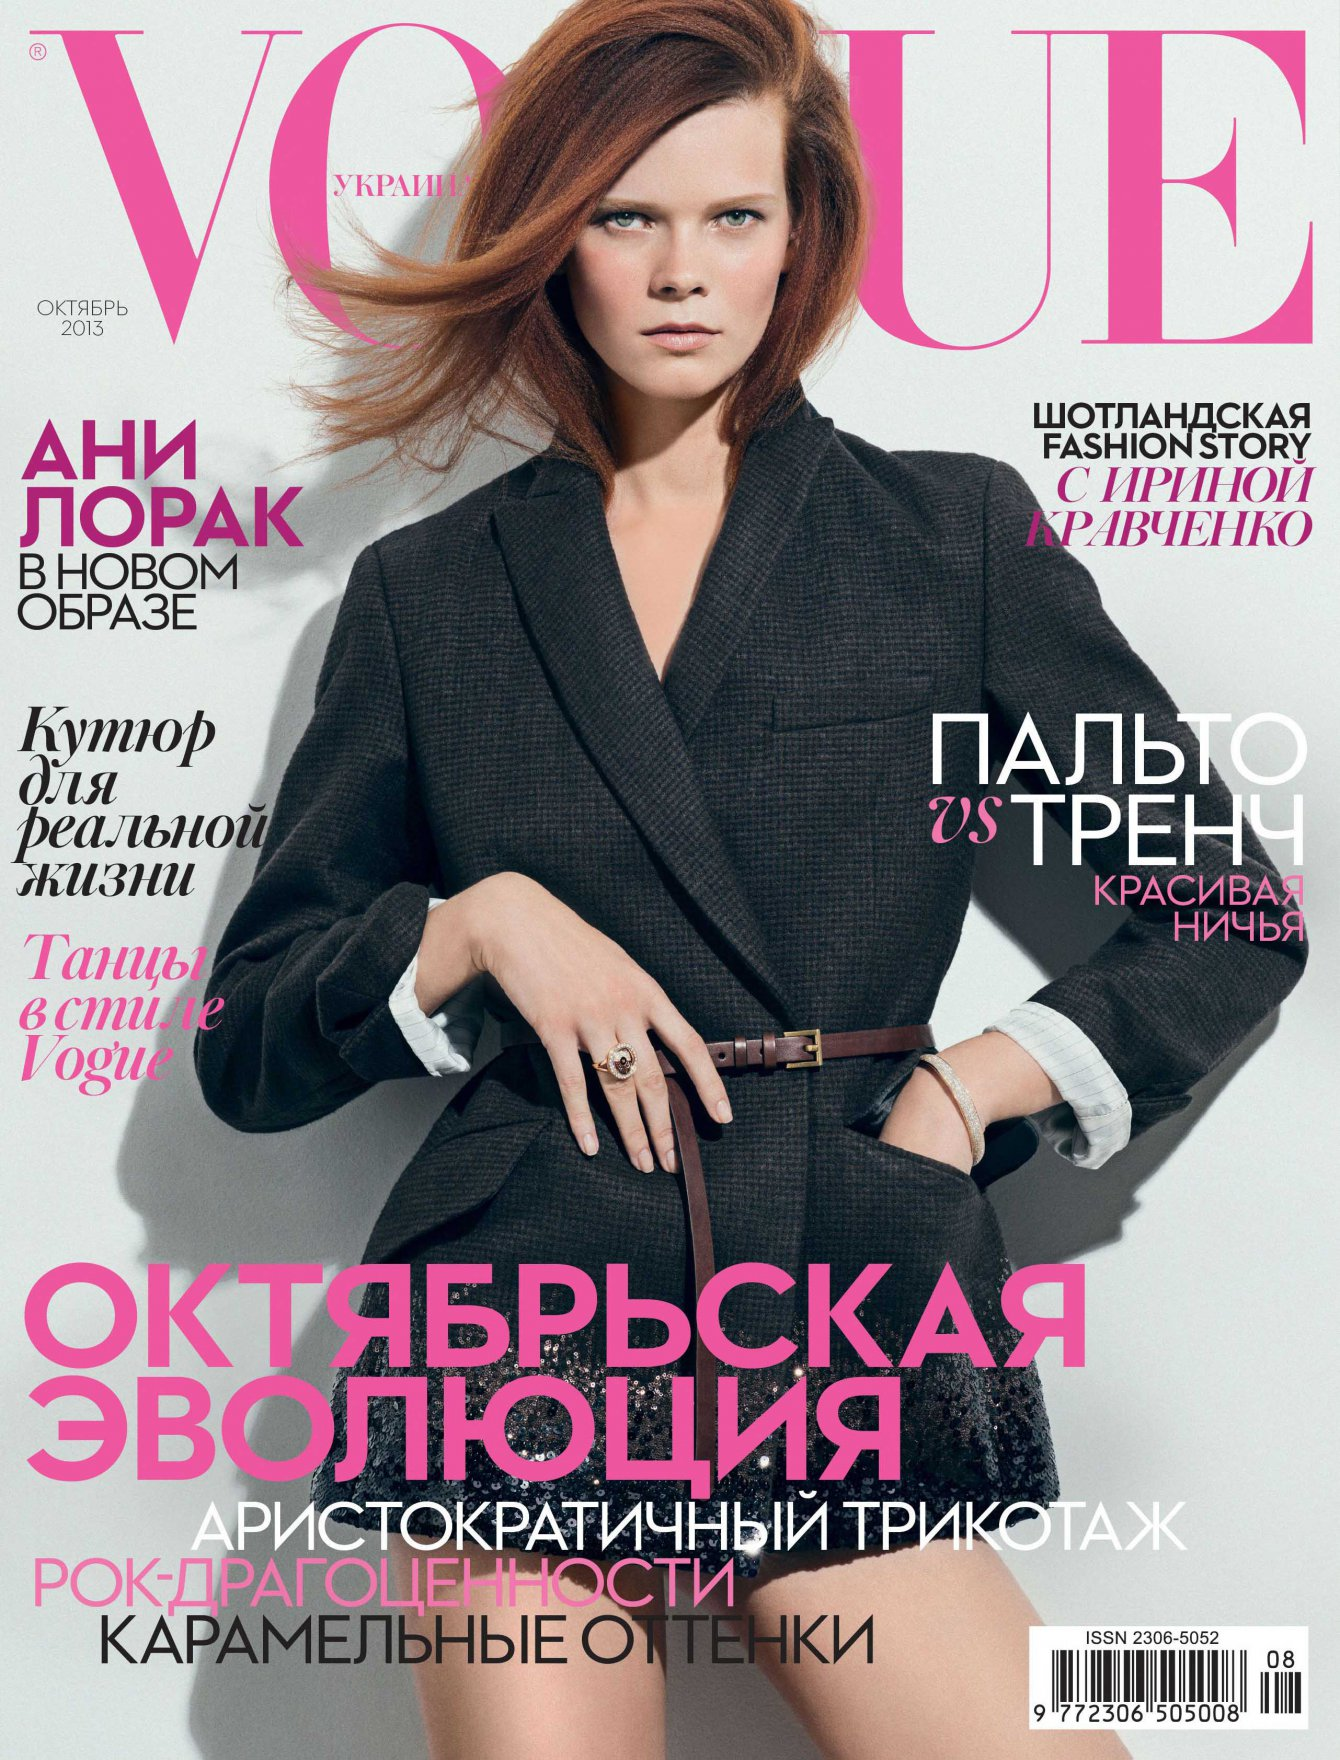 VOGUE UKRAINE oct 13 IRIS VAN HERPEN cover